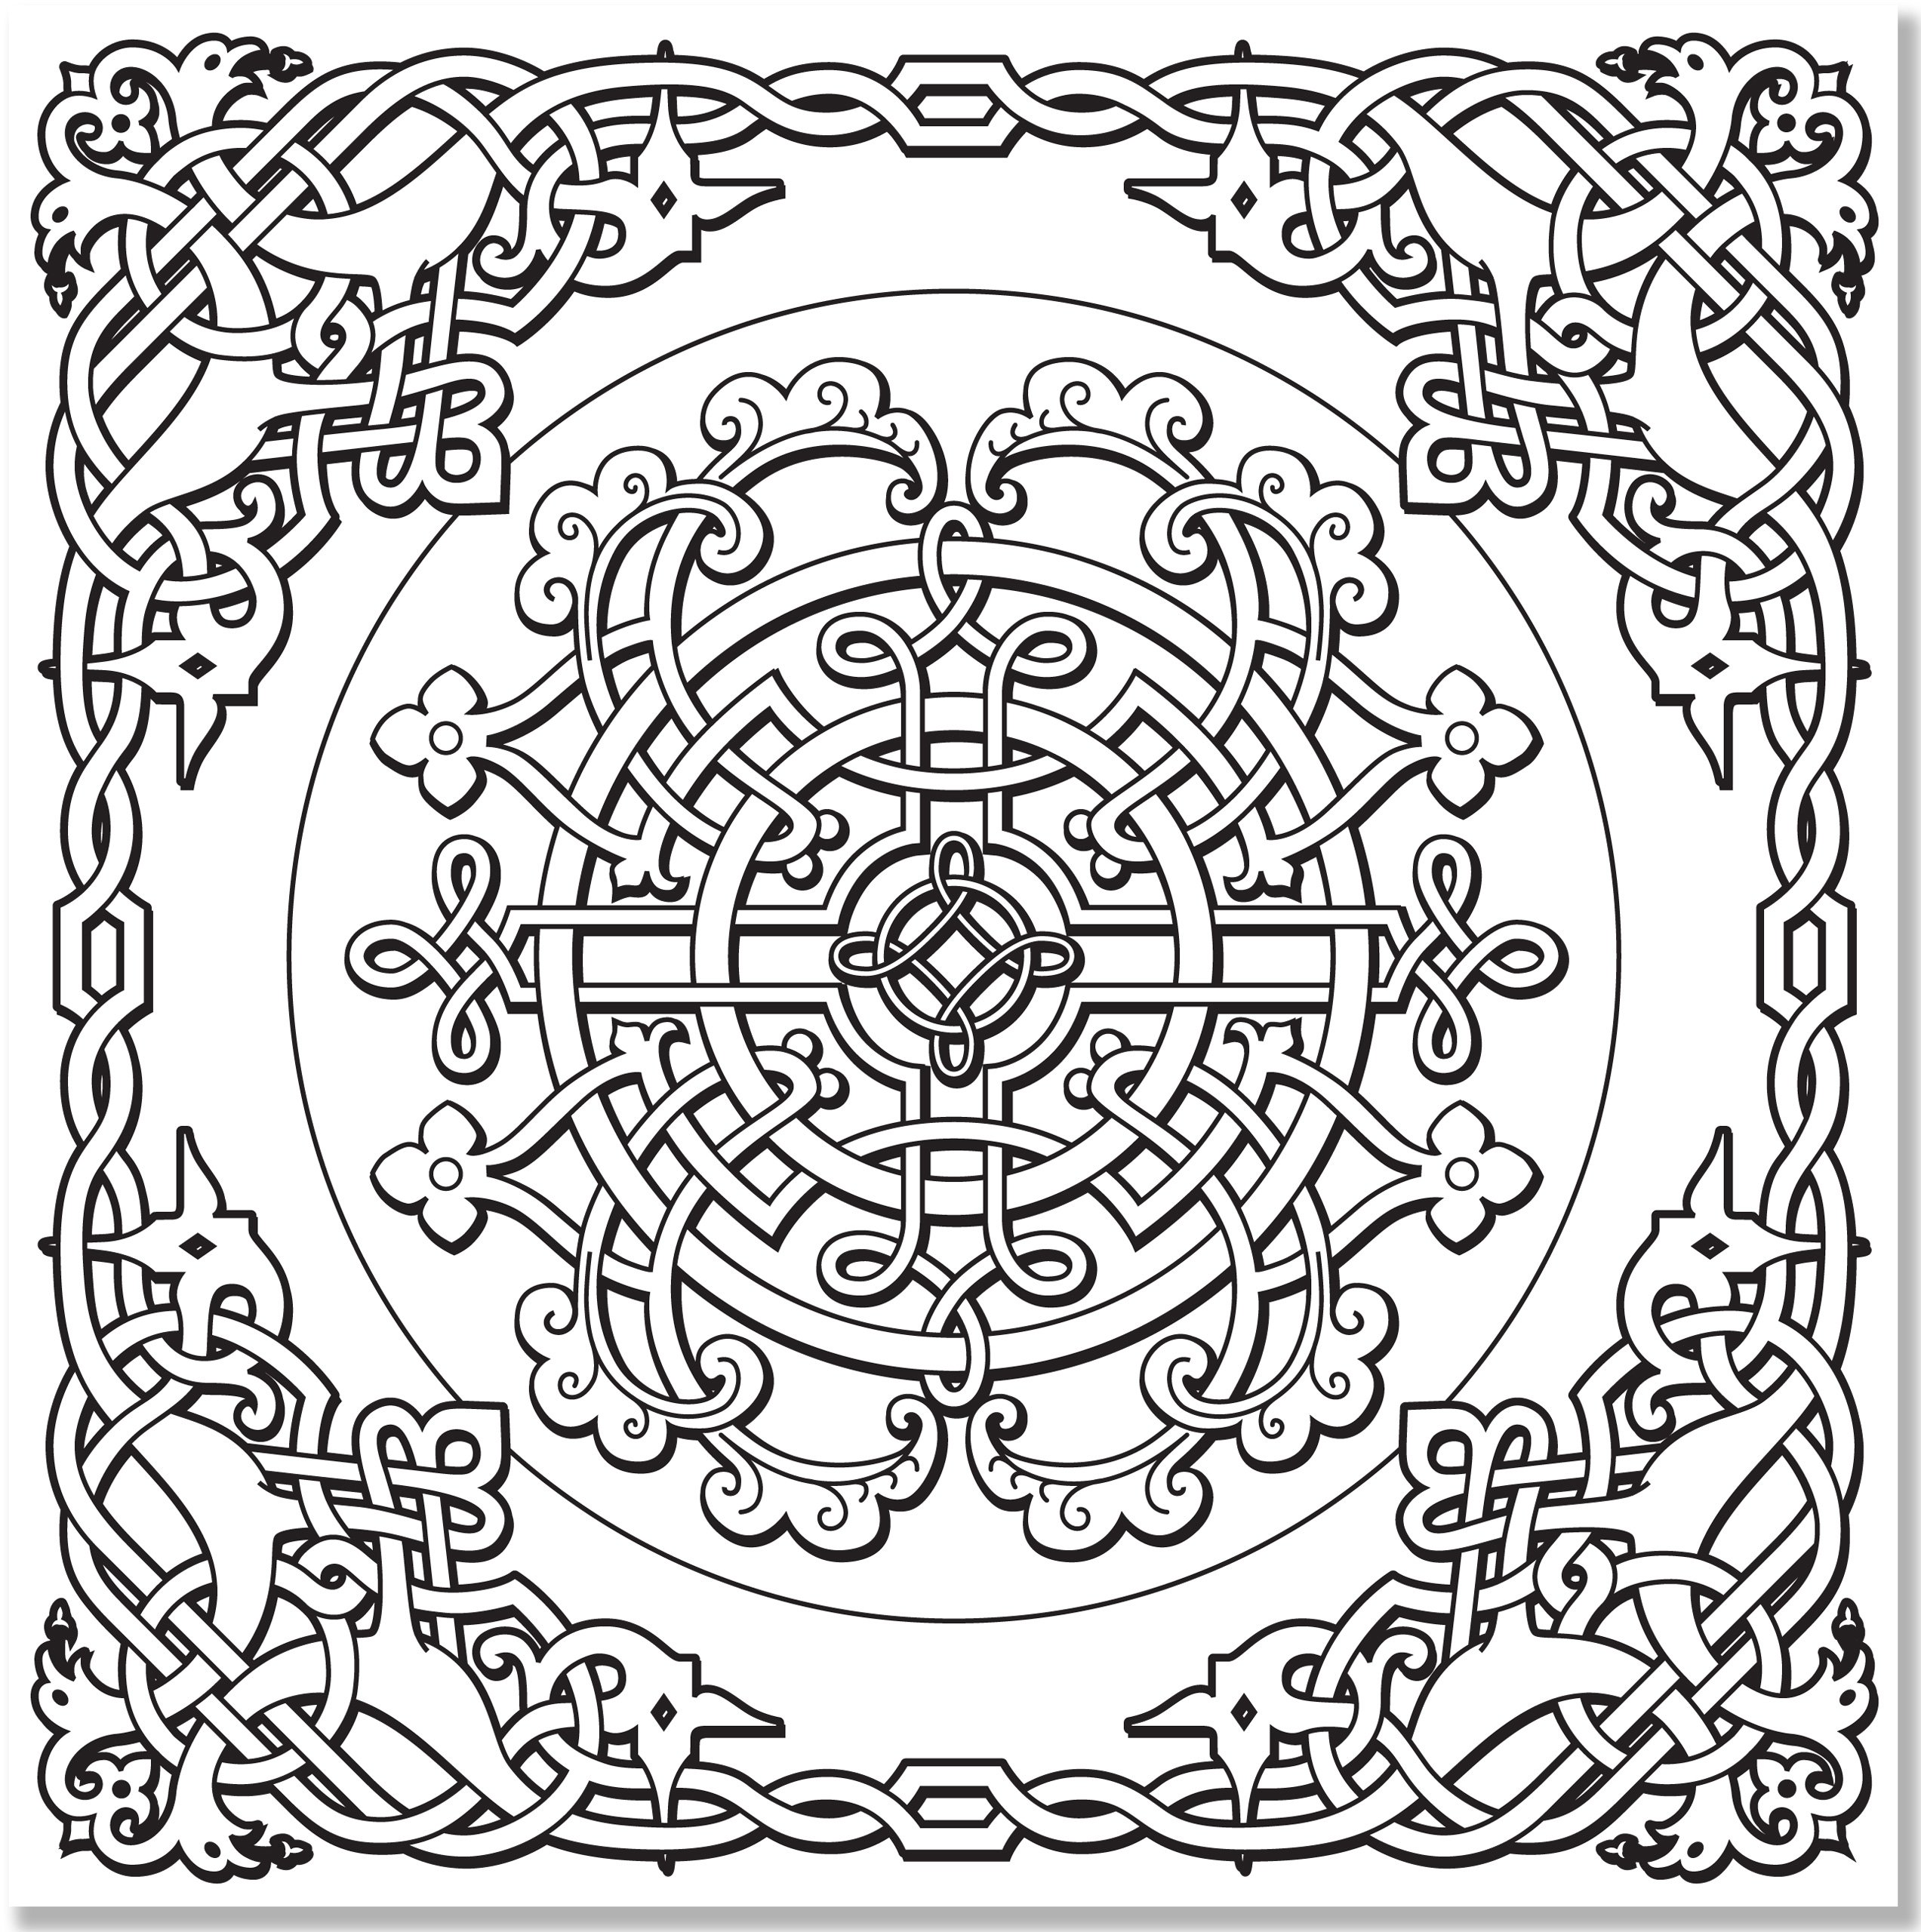 Stress relief coloring sheets free - Amazon Com Celtic Designs Adult Coloring Book 31 Stress Relieving Designs Studio 9781441317438 Peter Pauper Press Books